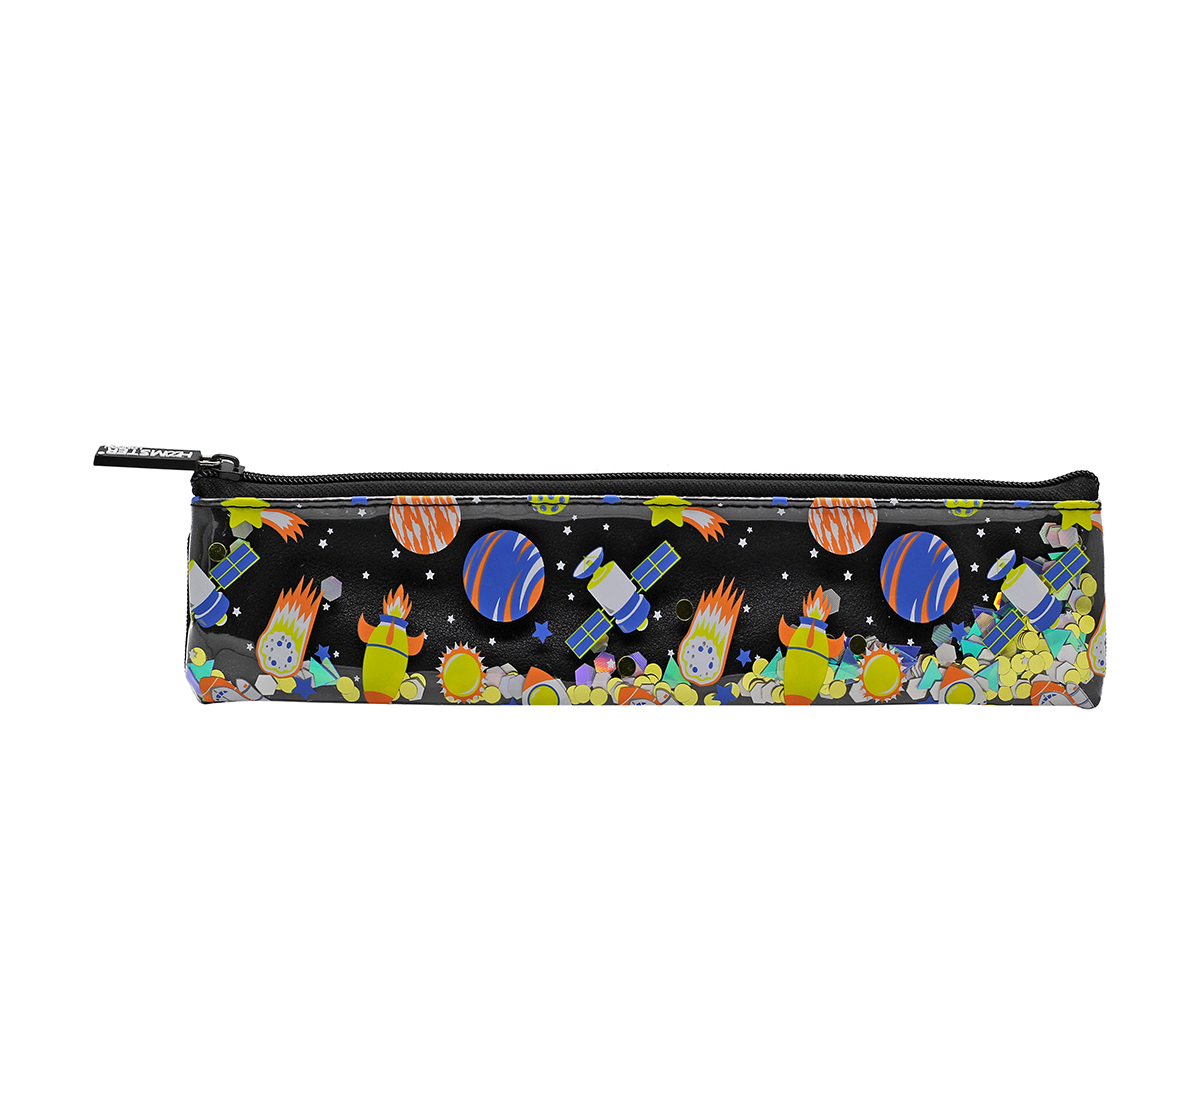 Hamster London | Hamster London Space Pencil Pouch with Book Band for Kids age 3Y+ (Black)